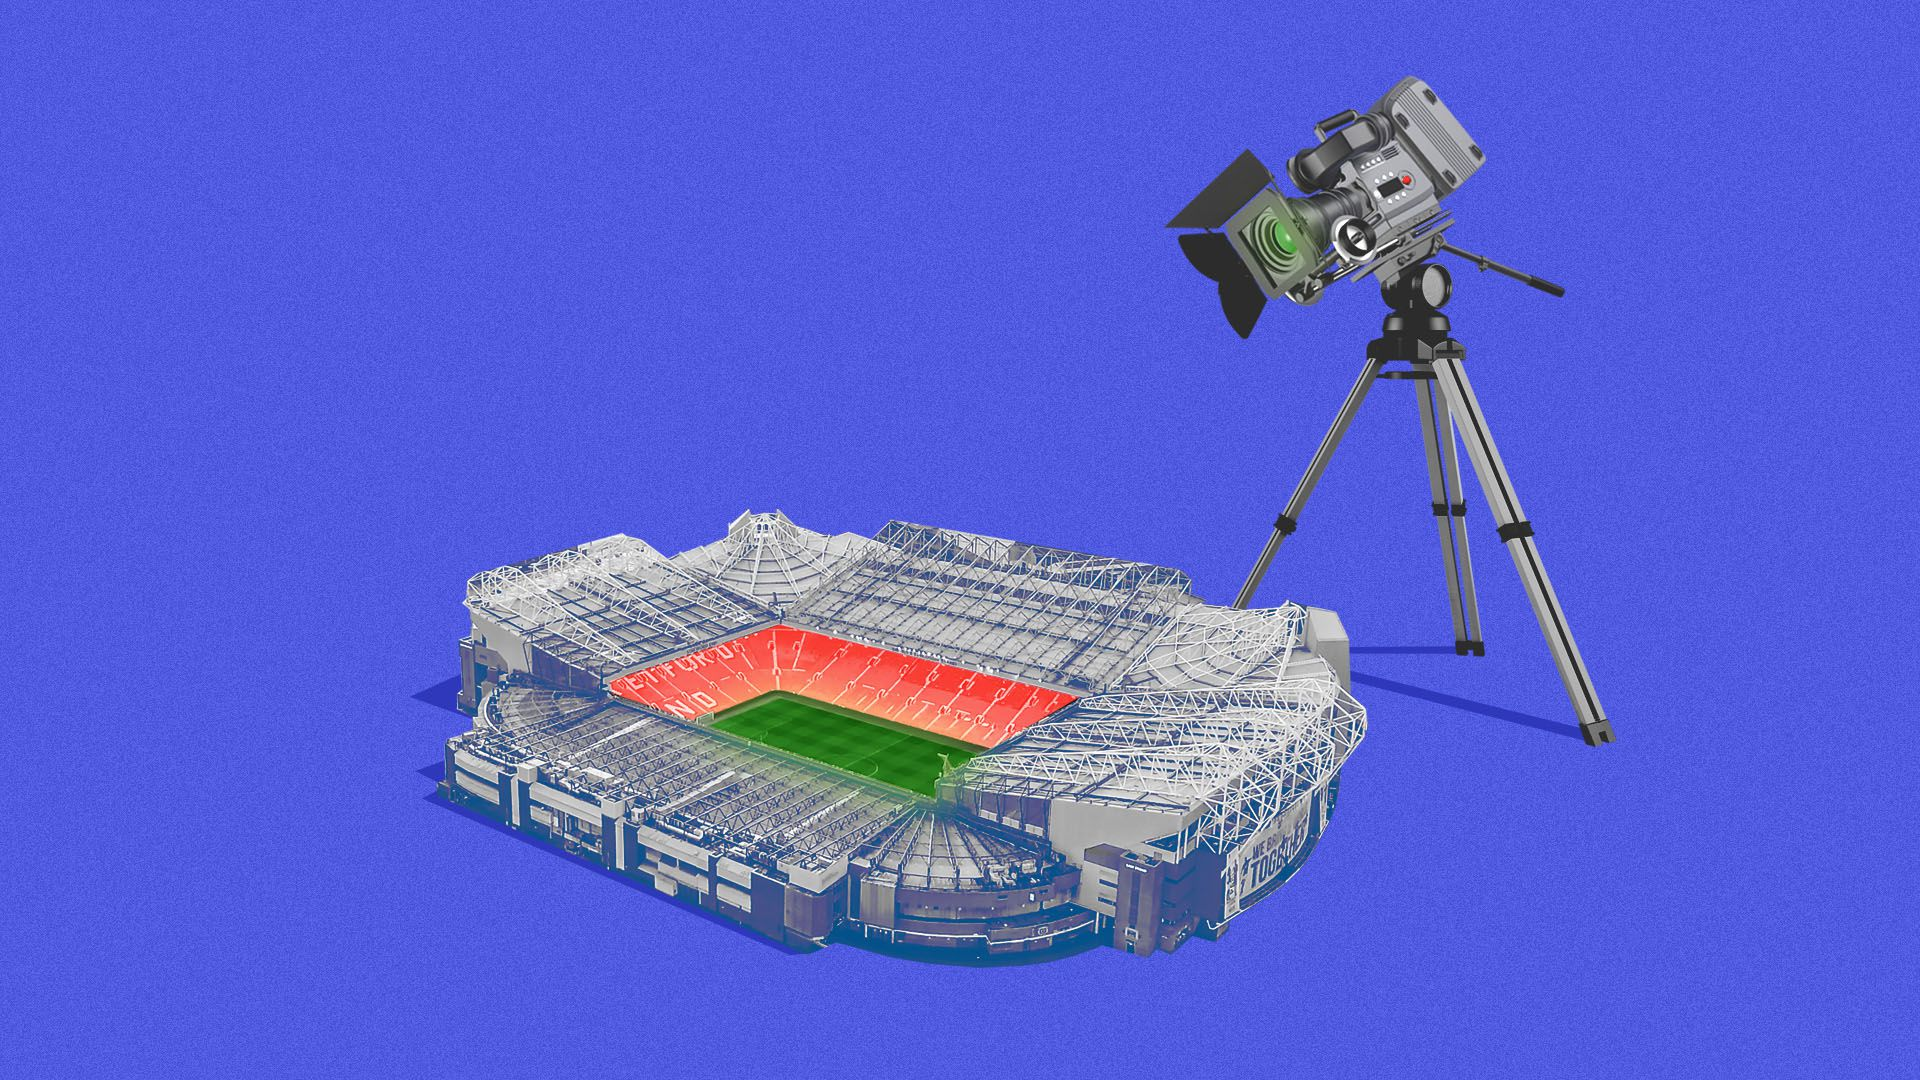 Illustration of a giant television camera over a sports stadium